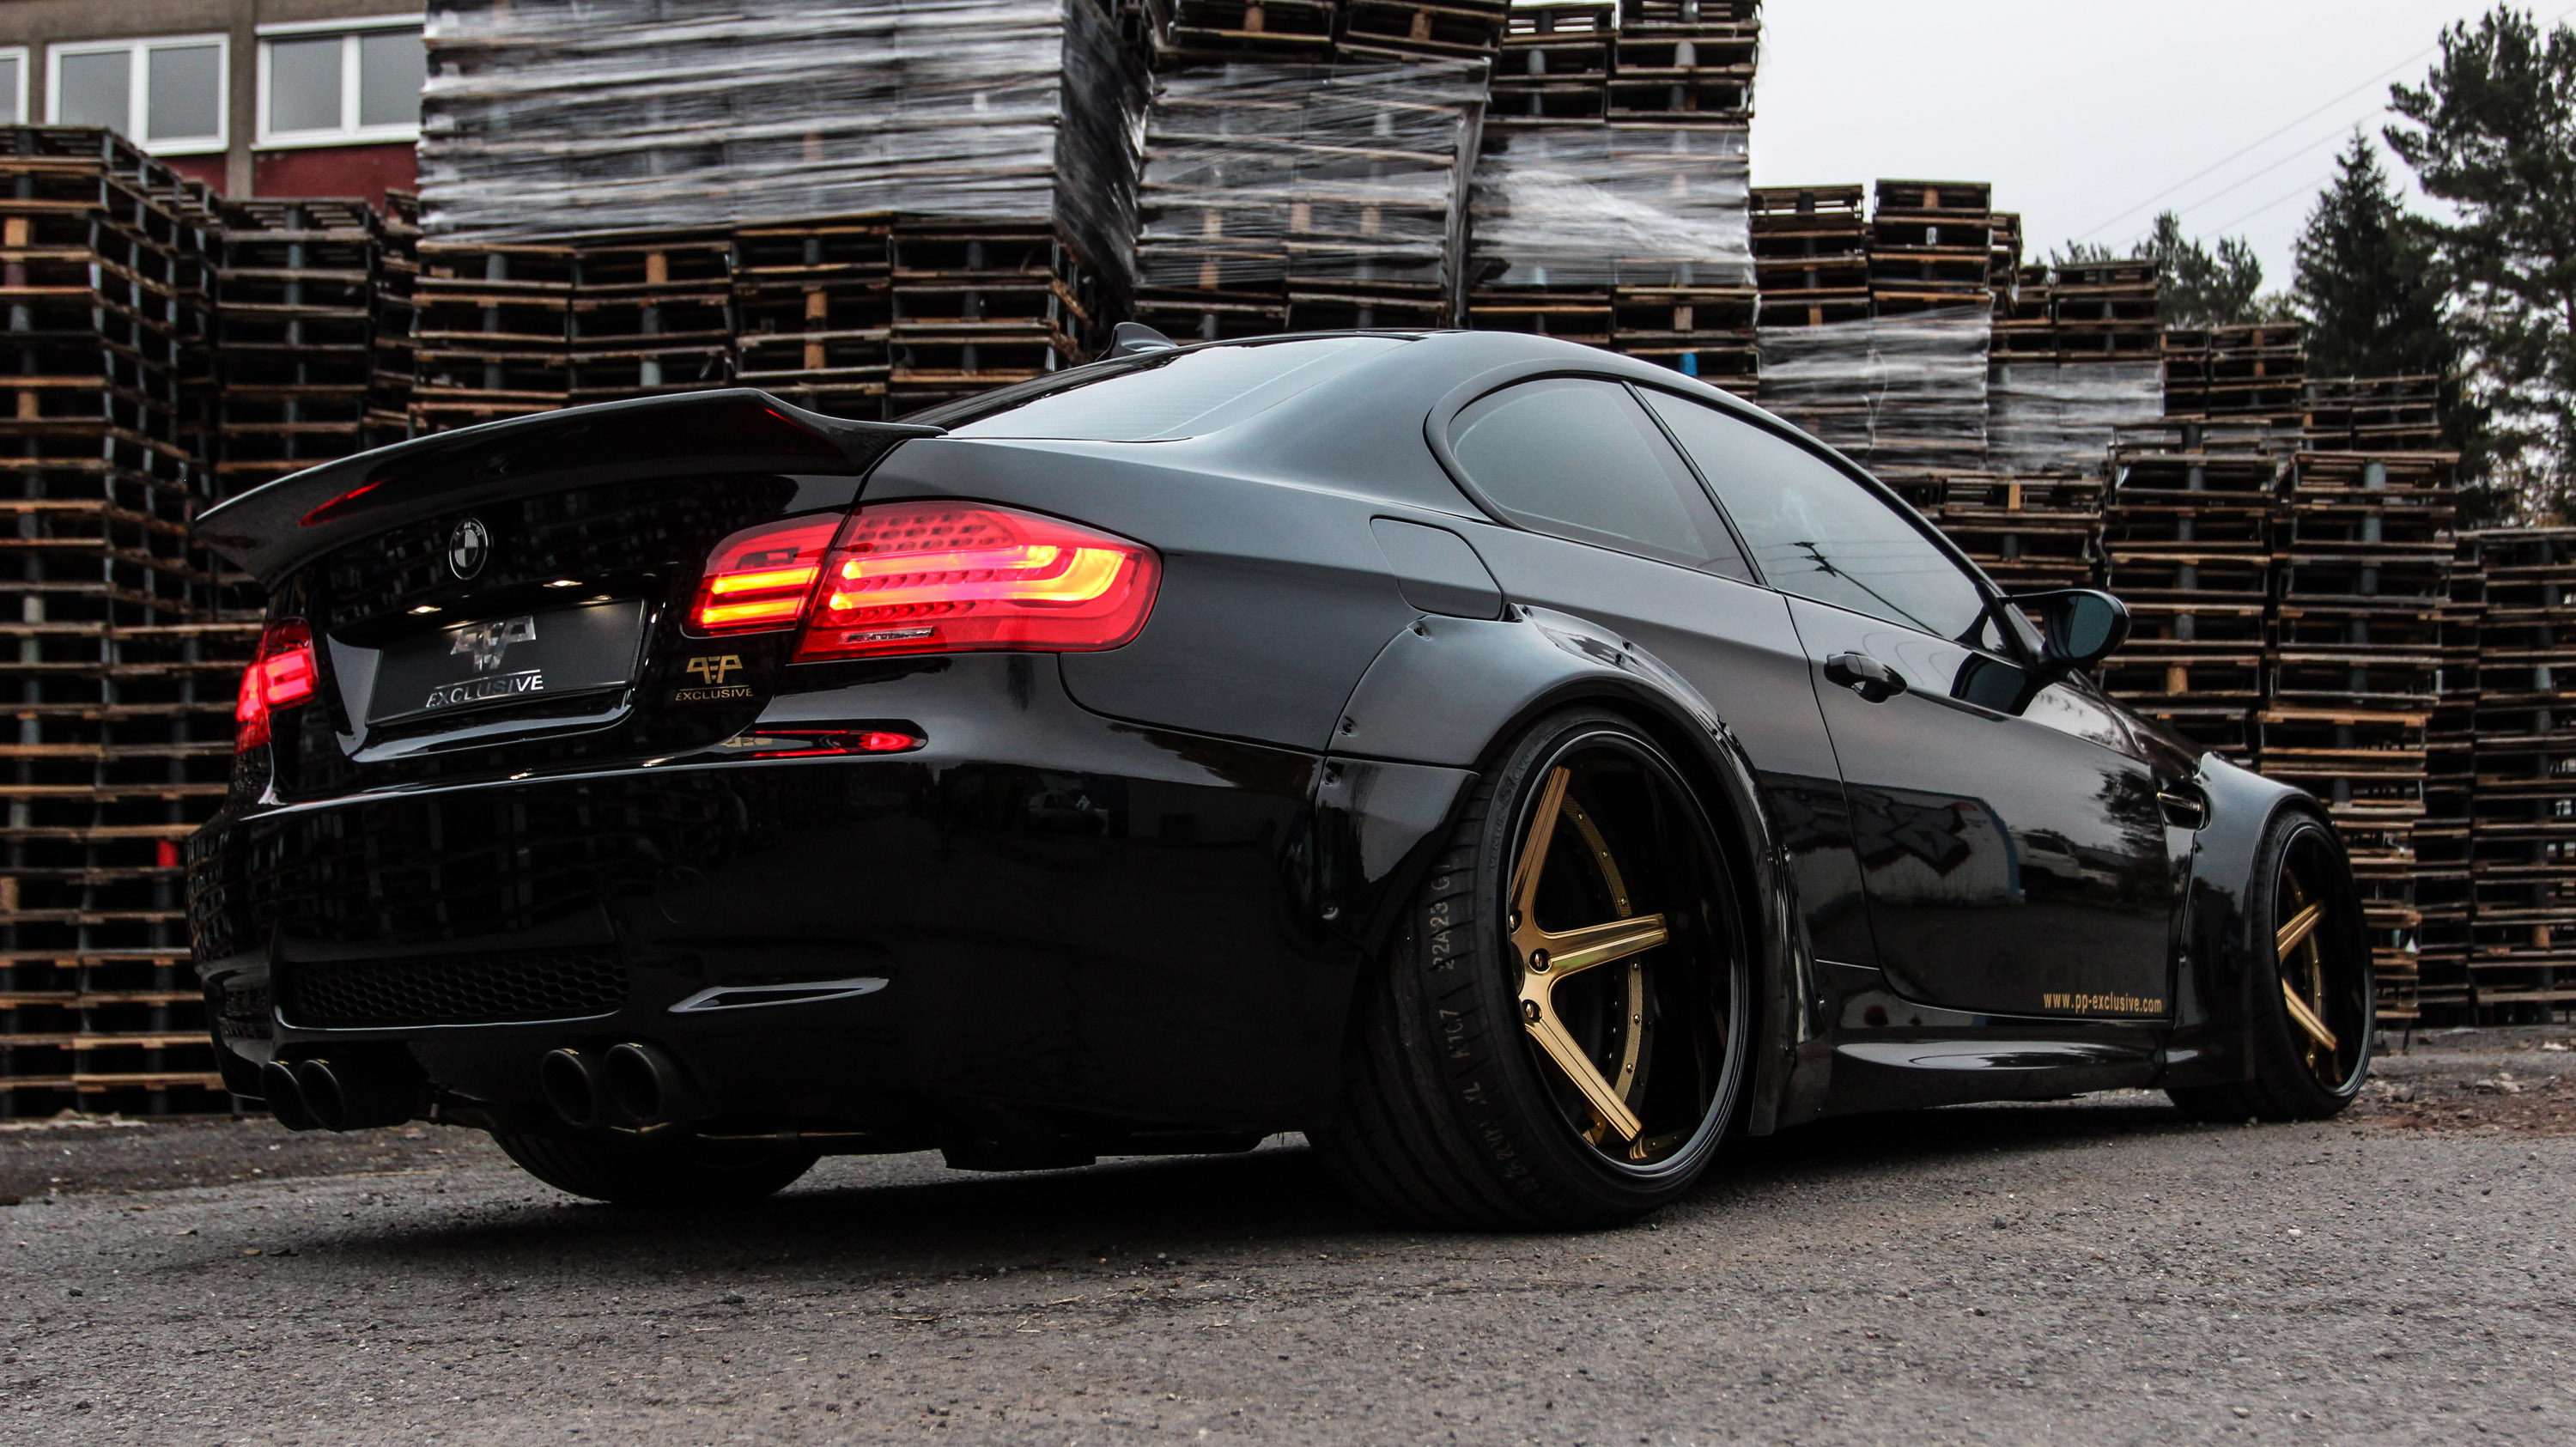 pp exclusive and liberty walk unite for monstrous bmw m3. Black Bedroom Furniture Sets. Home Design Ideas